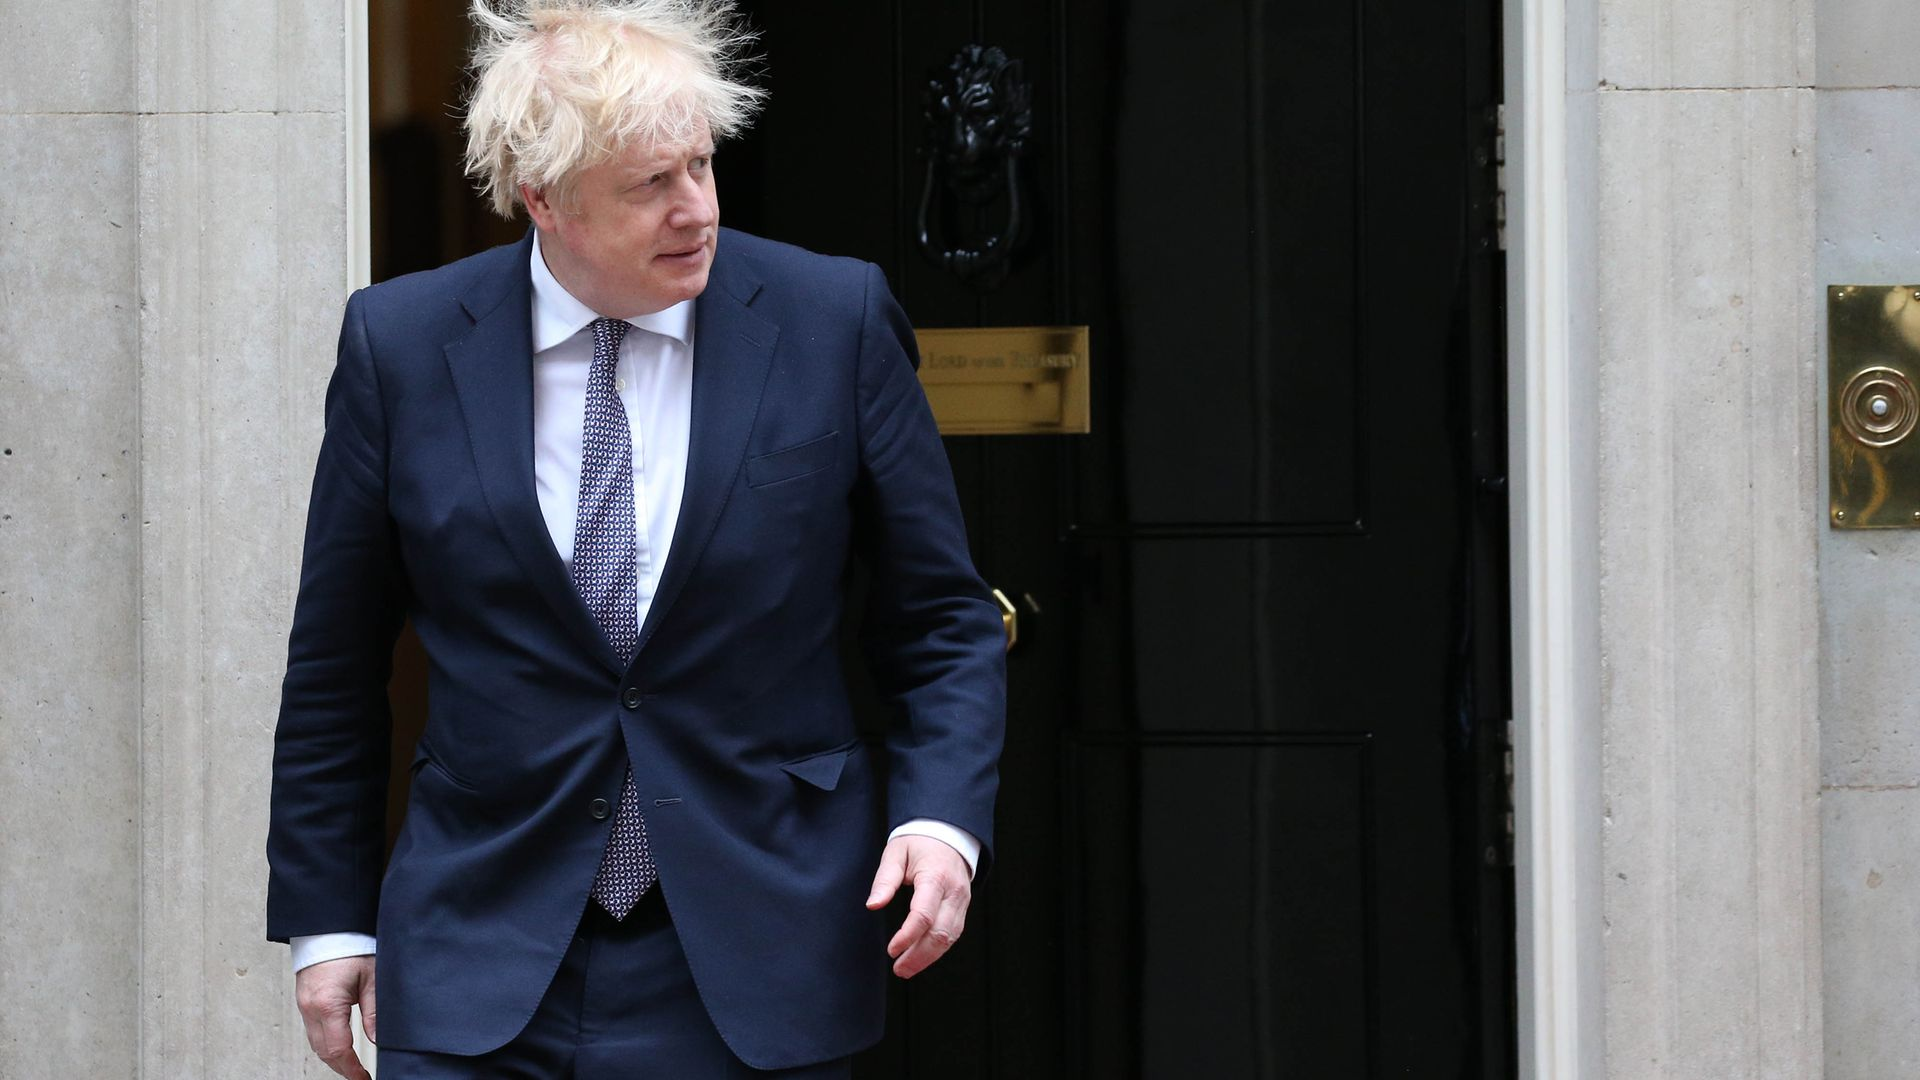 Prime Minister Boris Johnson outside 10 Downing Street in London - Credit: PA